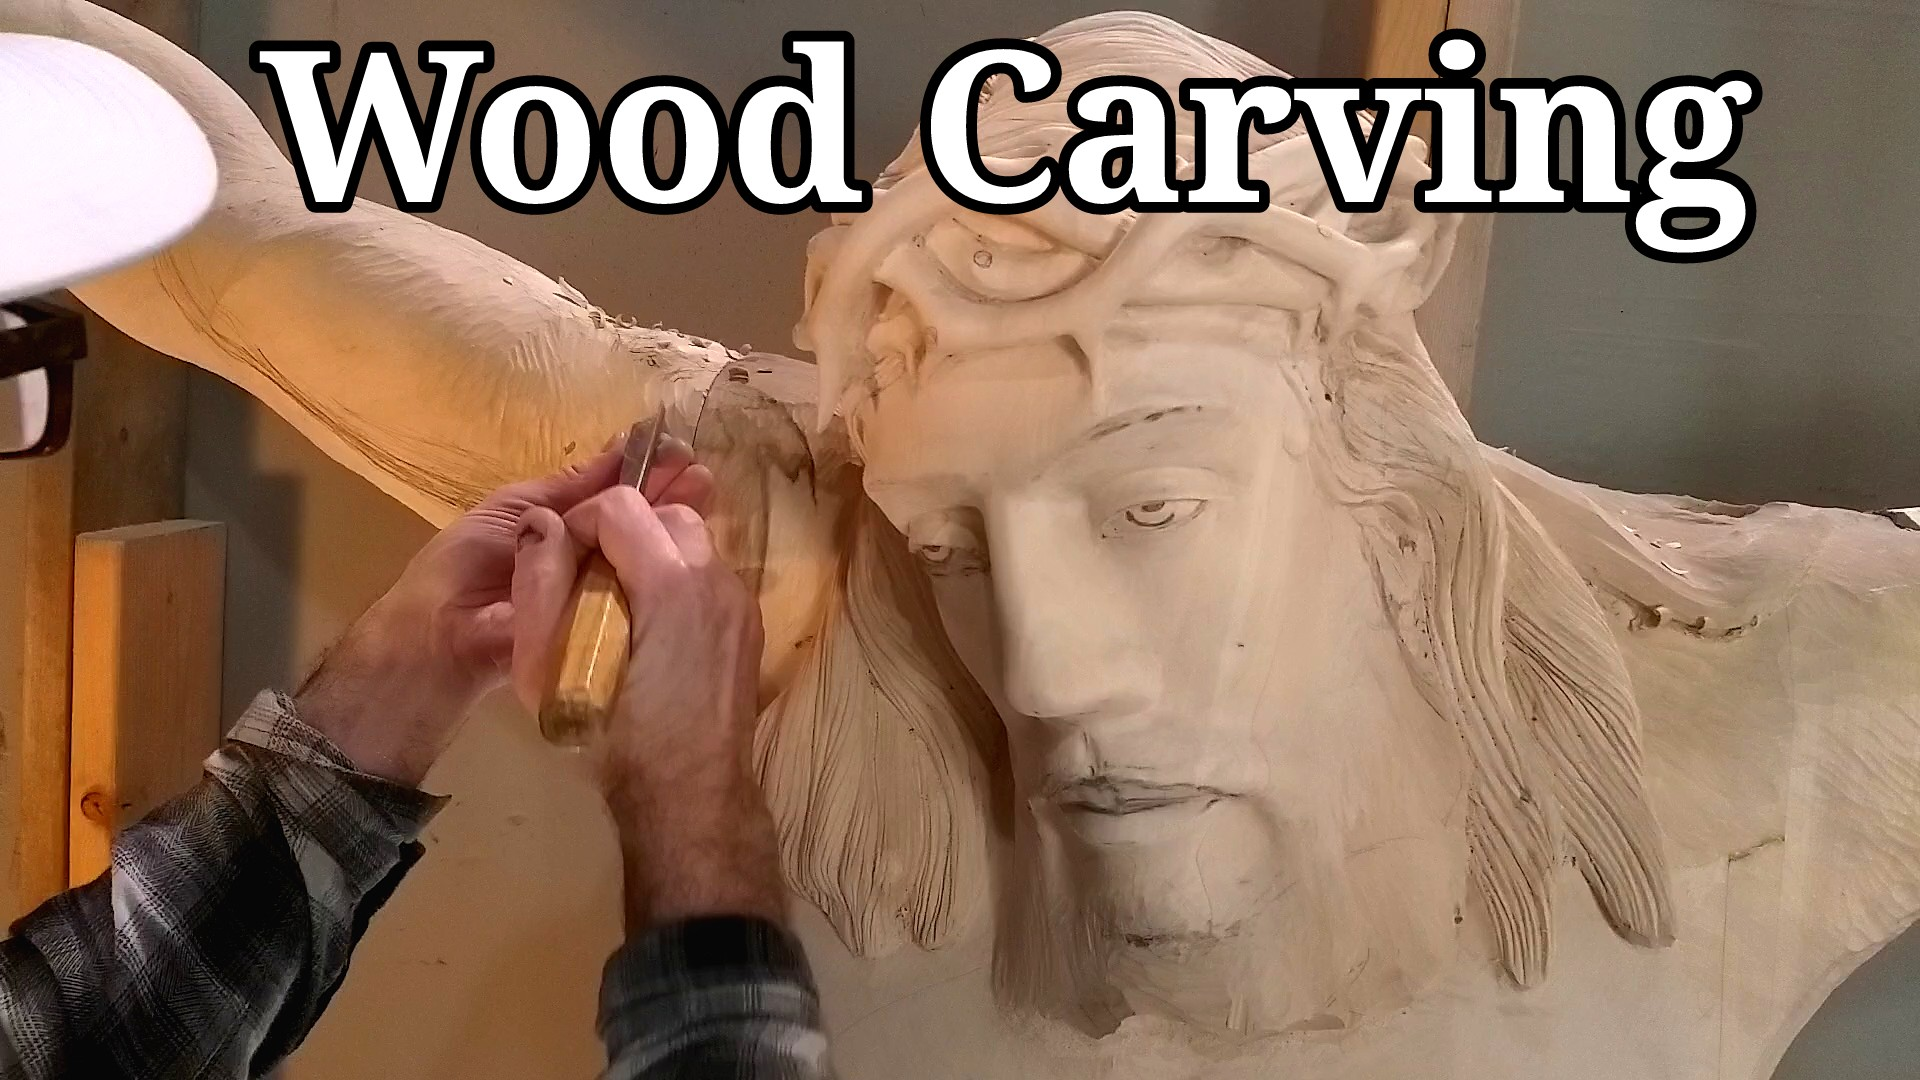 Wood carving Jesus in the cross